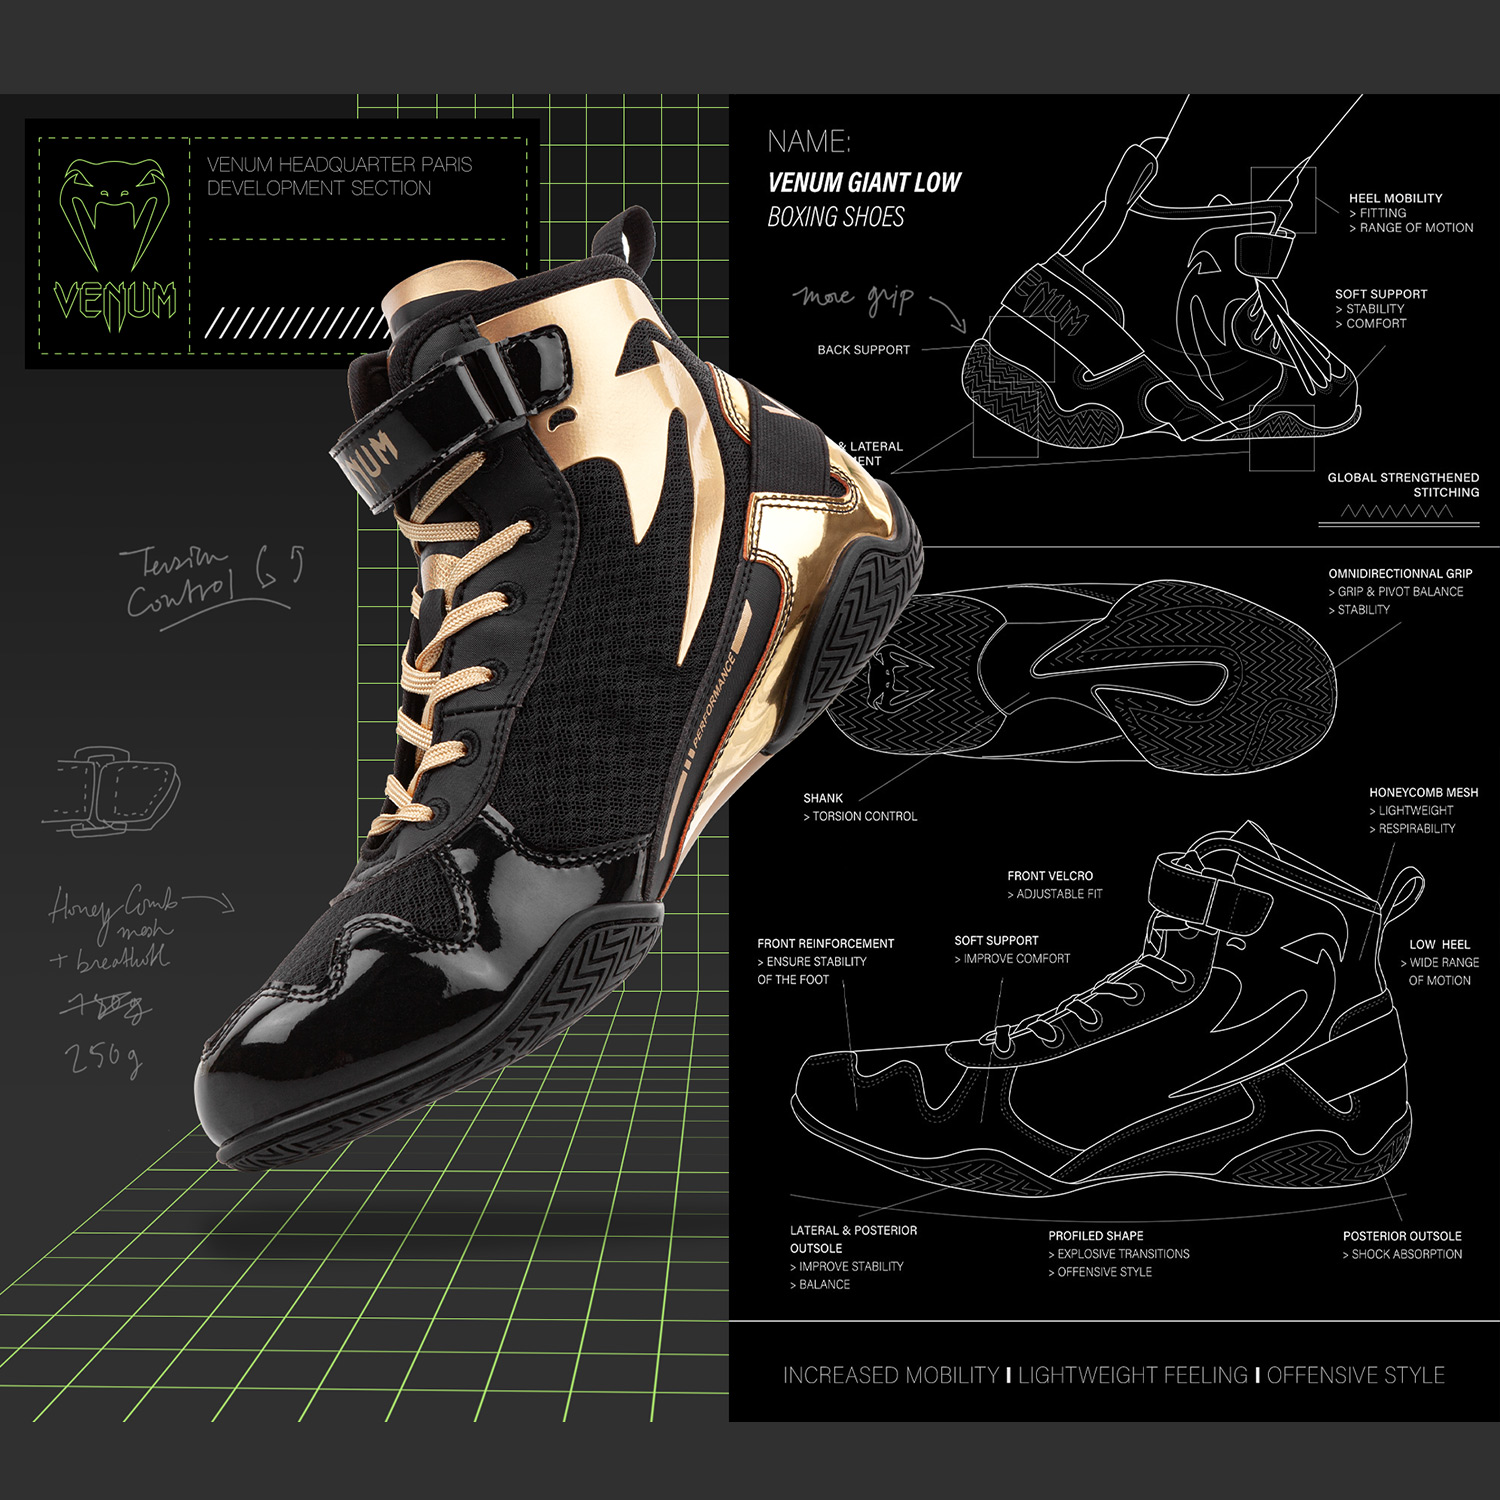 Giant Low boxing shoes